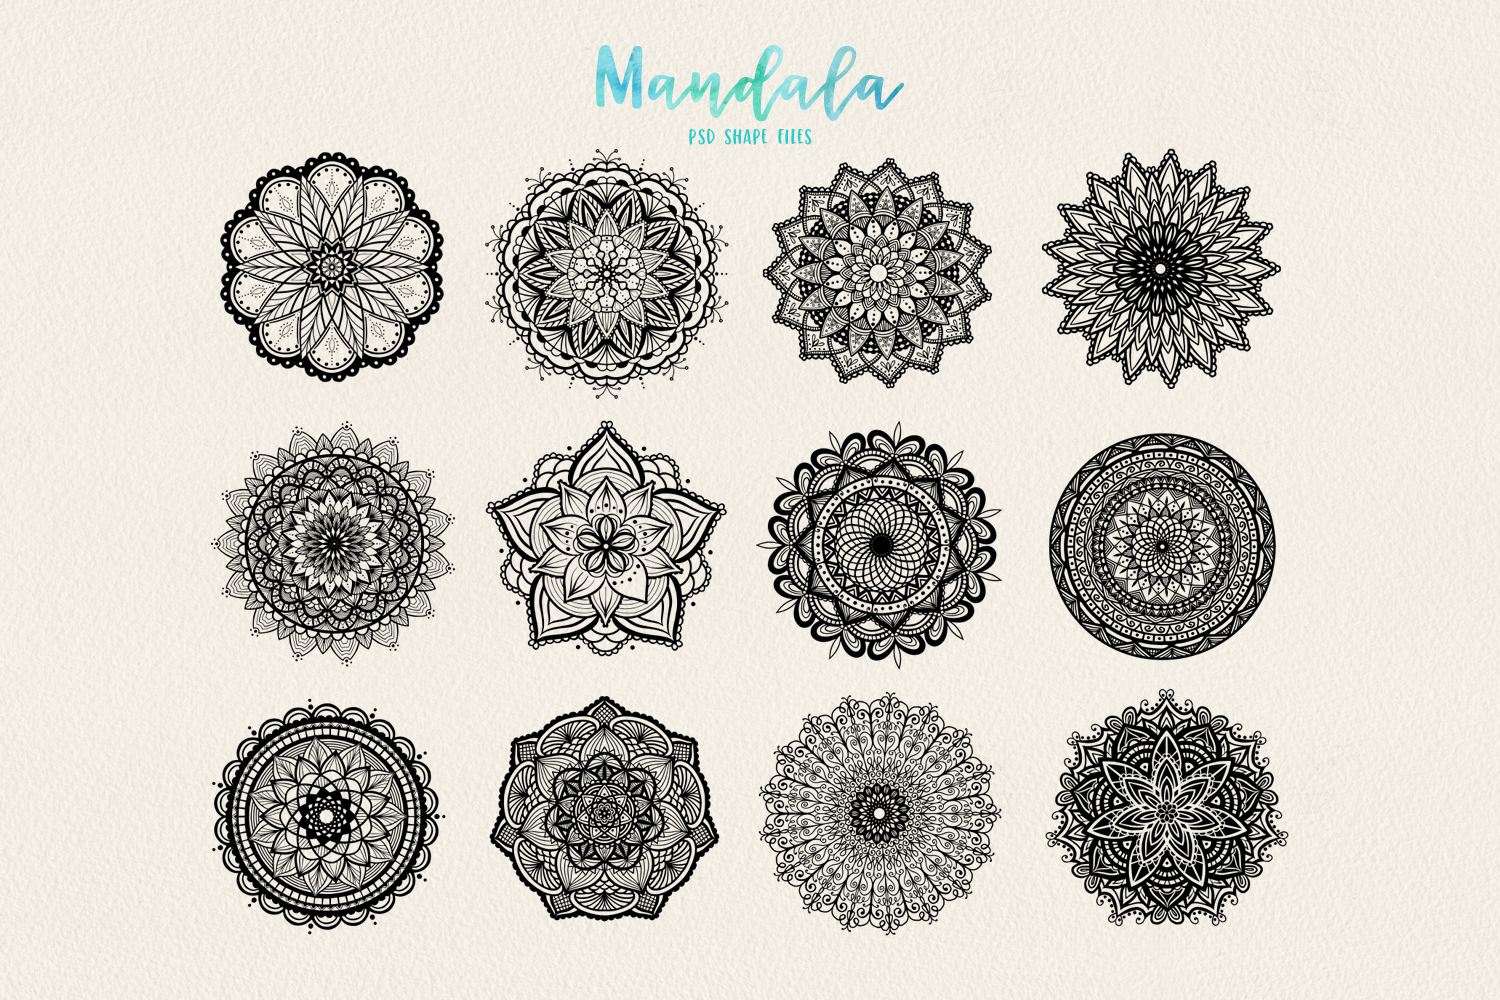 Mandala Vectors & Bonus Watercolor Styles example image 3